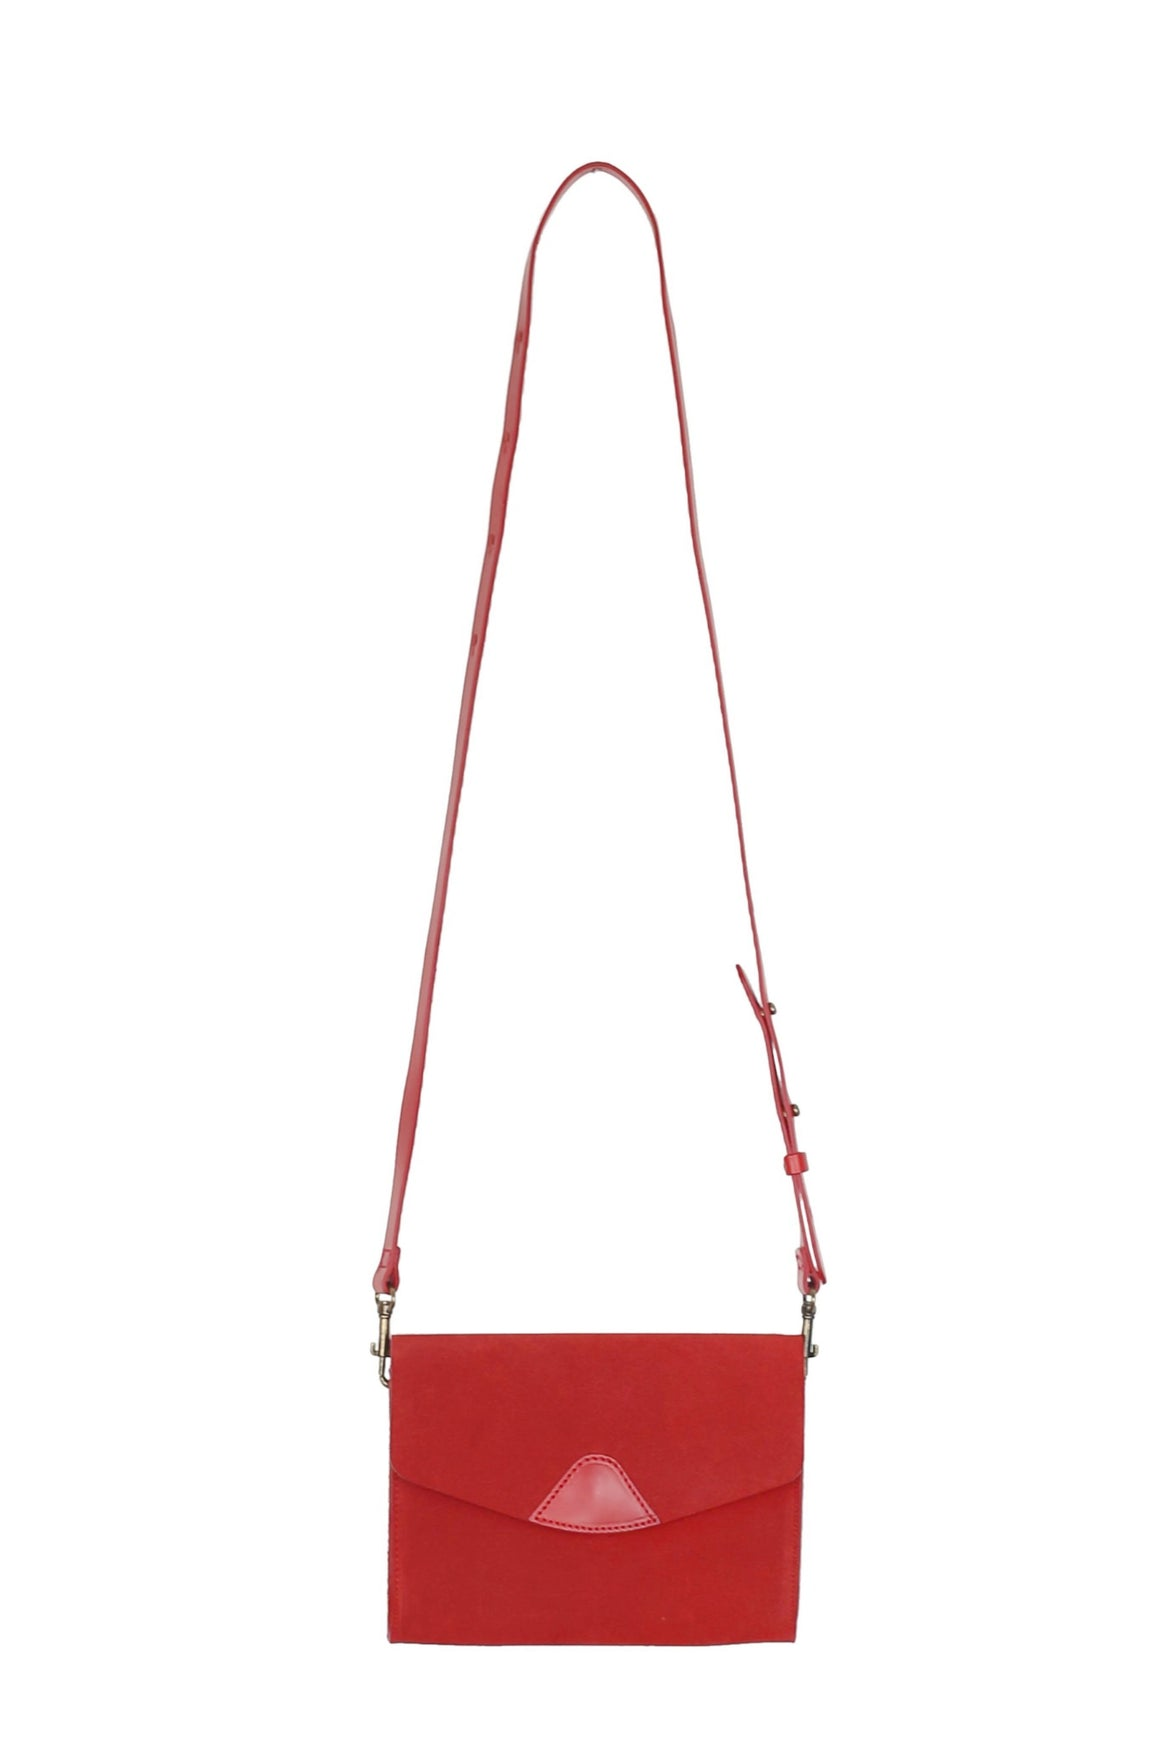 Mini Mox Bag - Cherry Suede